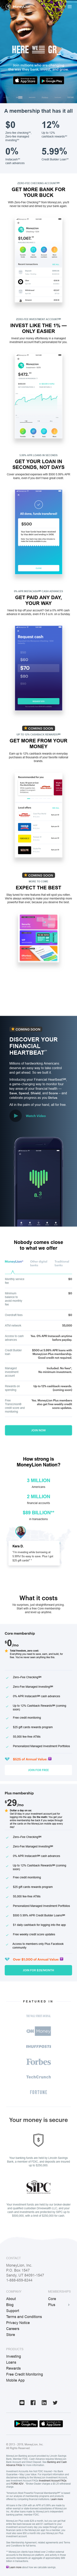 Example of Design for Finance, Banking, Mobile Landing Page by moneylion.com | Mobile Landing Page Design